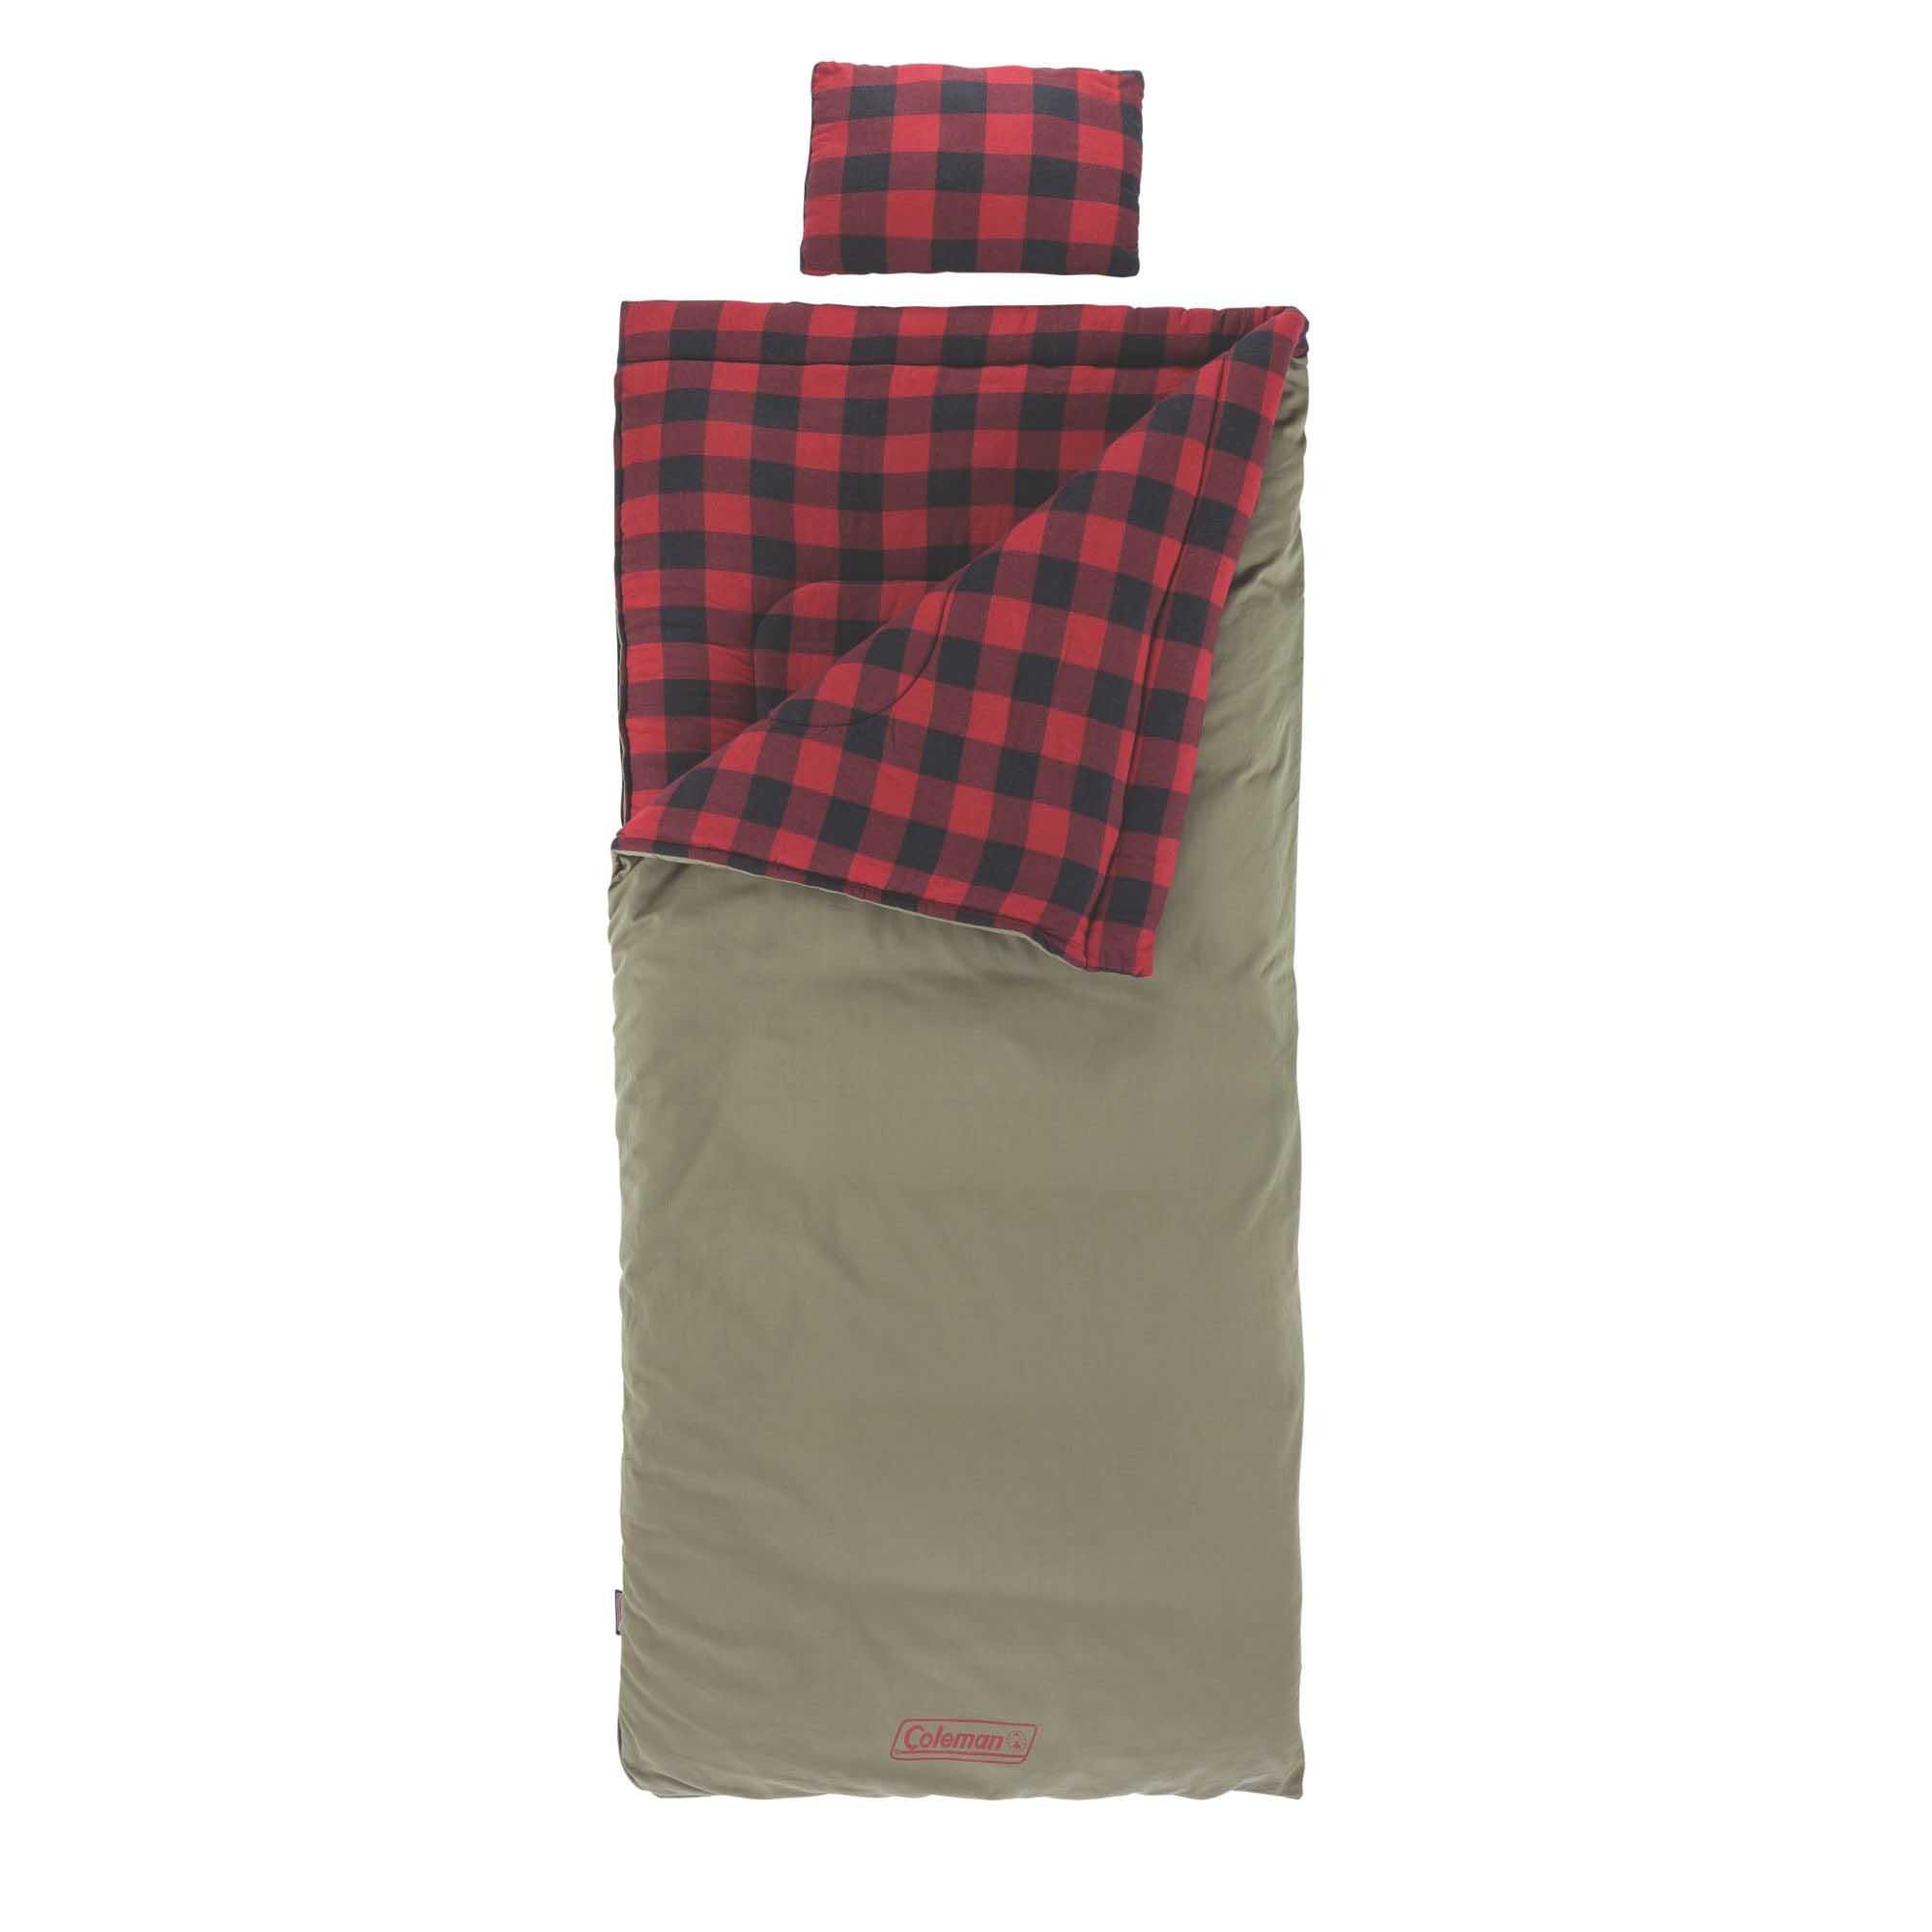 Coleman Big Game -5 Degrees Big & Tall Sleeping Bag_1.jpg